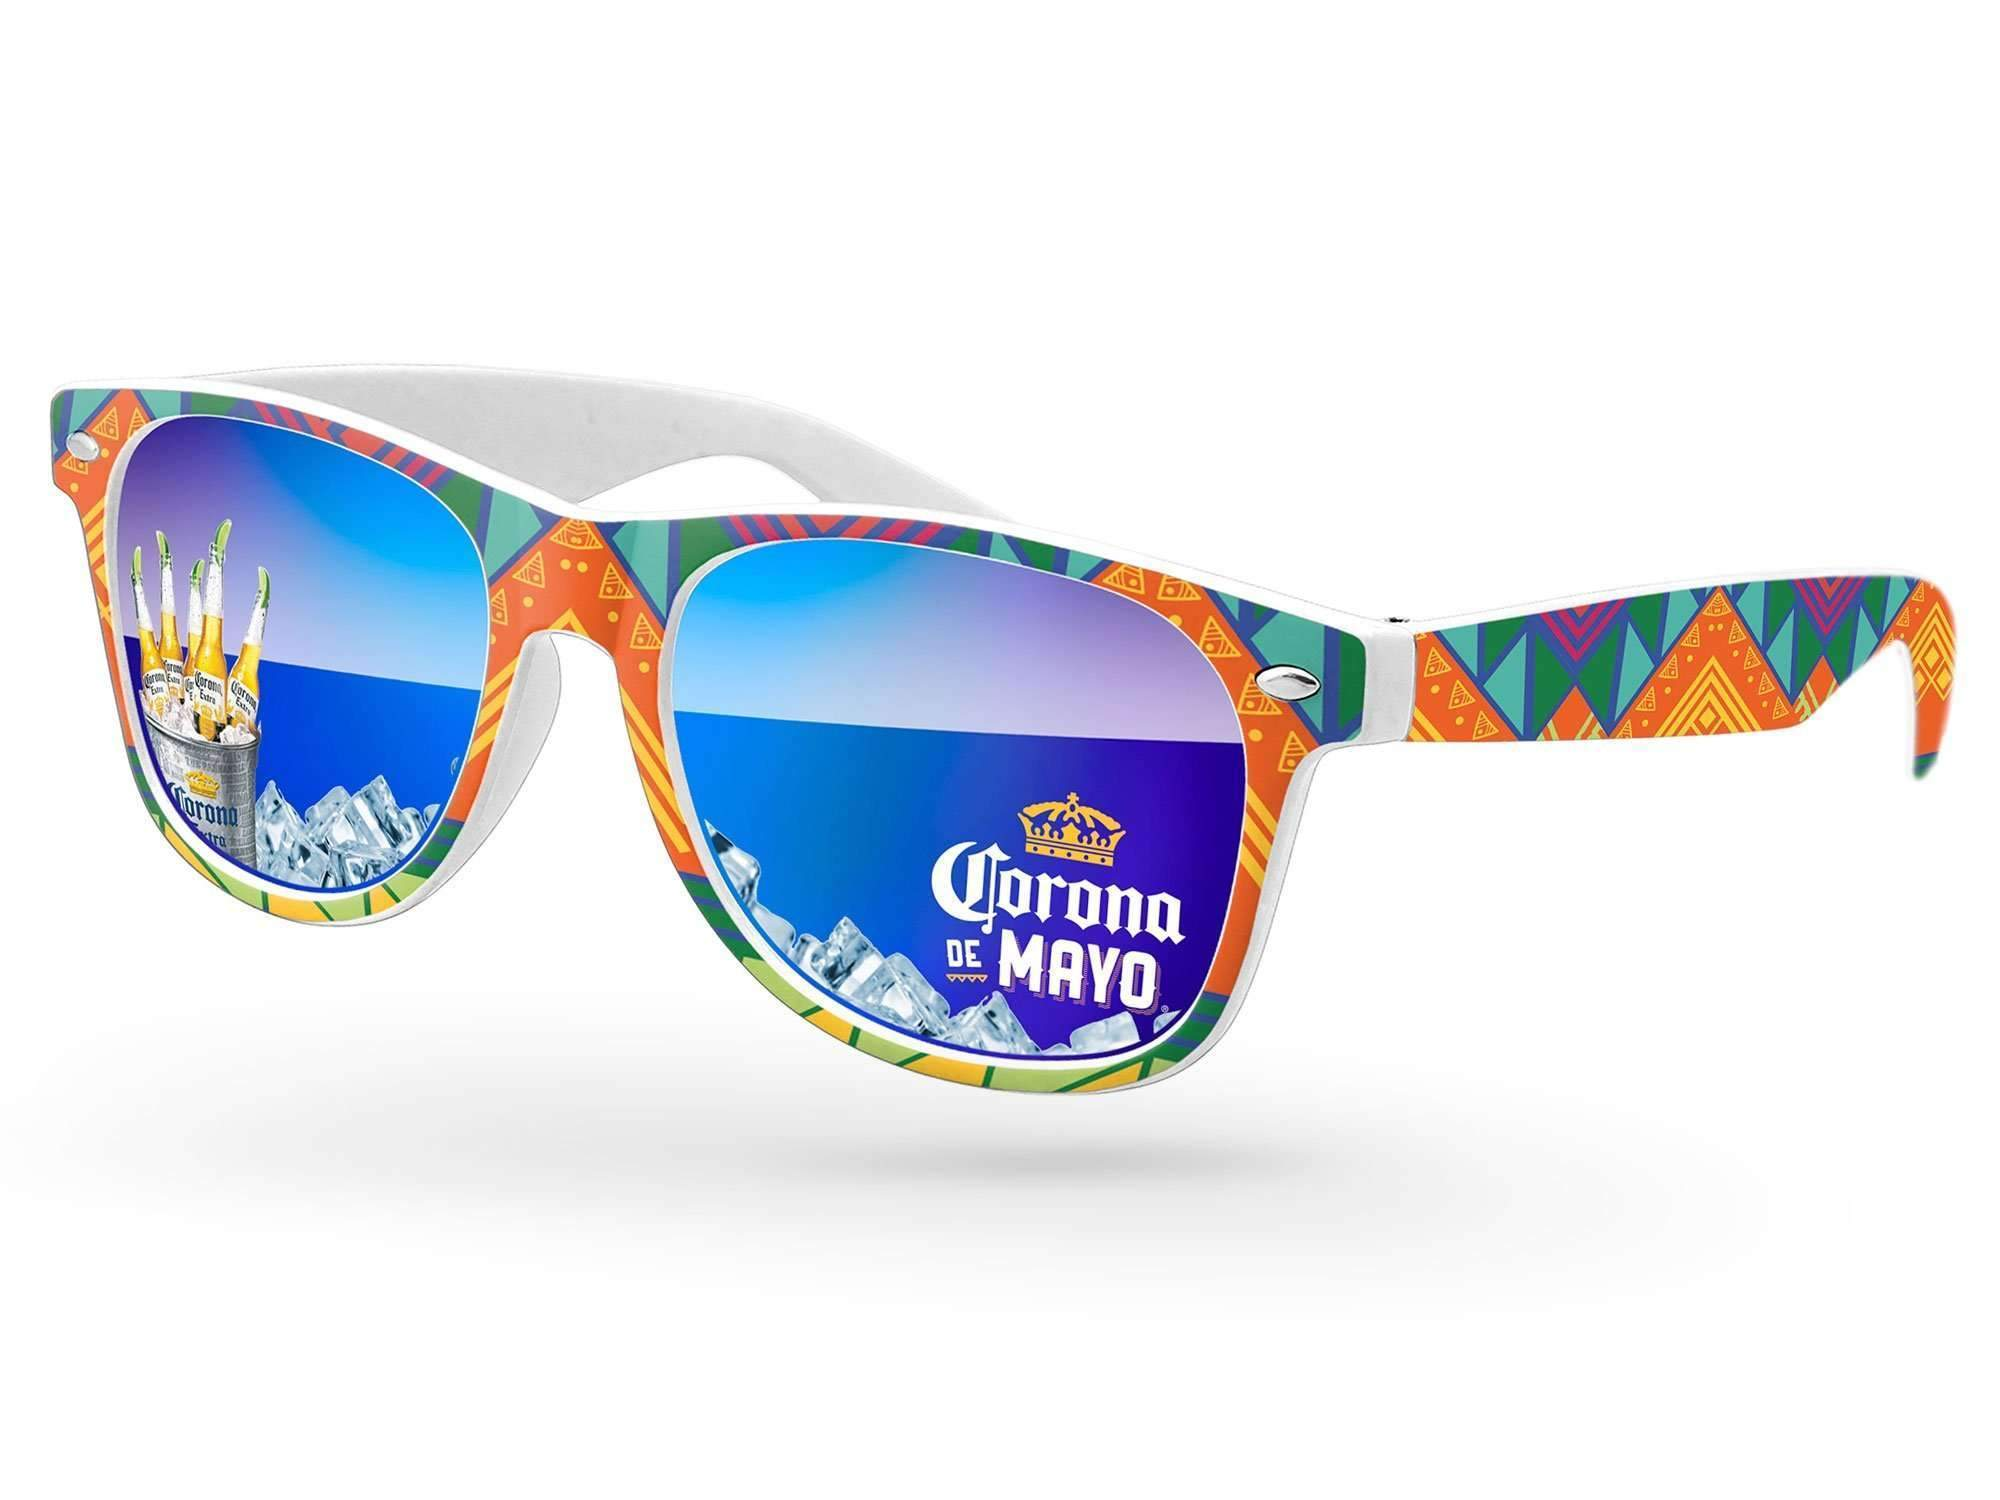 RM460 - Retro Mirror Promotional Sunglasses w/ full-color lens imprints & full-color full-frame heat transfer